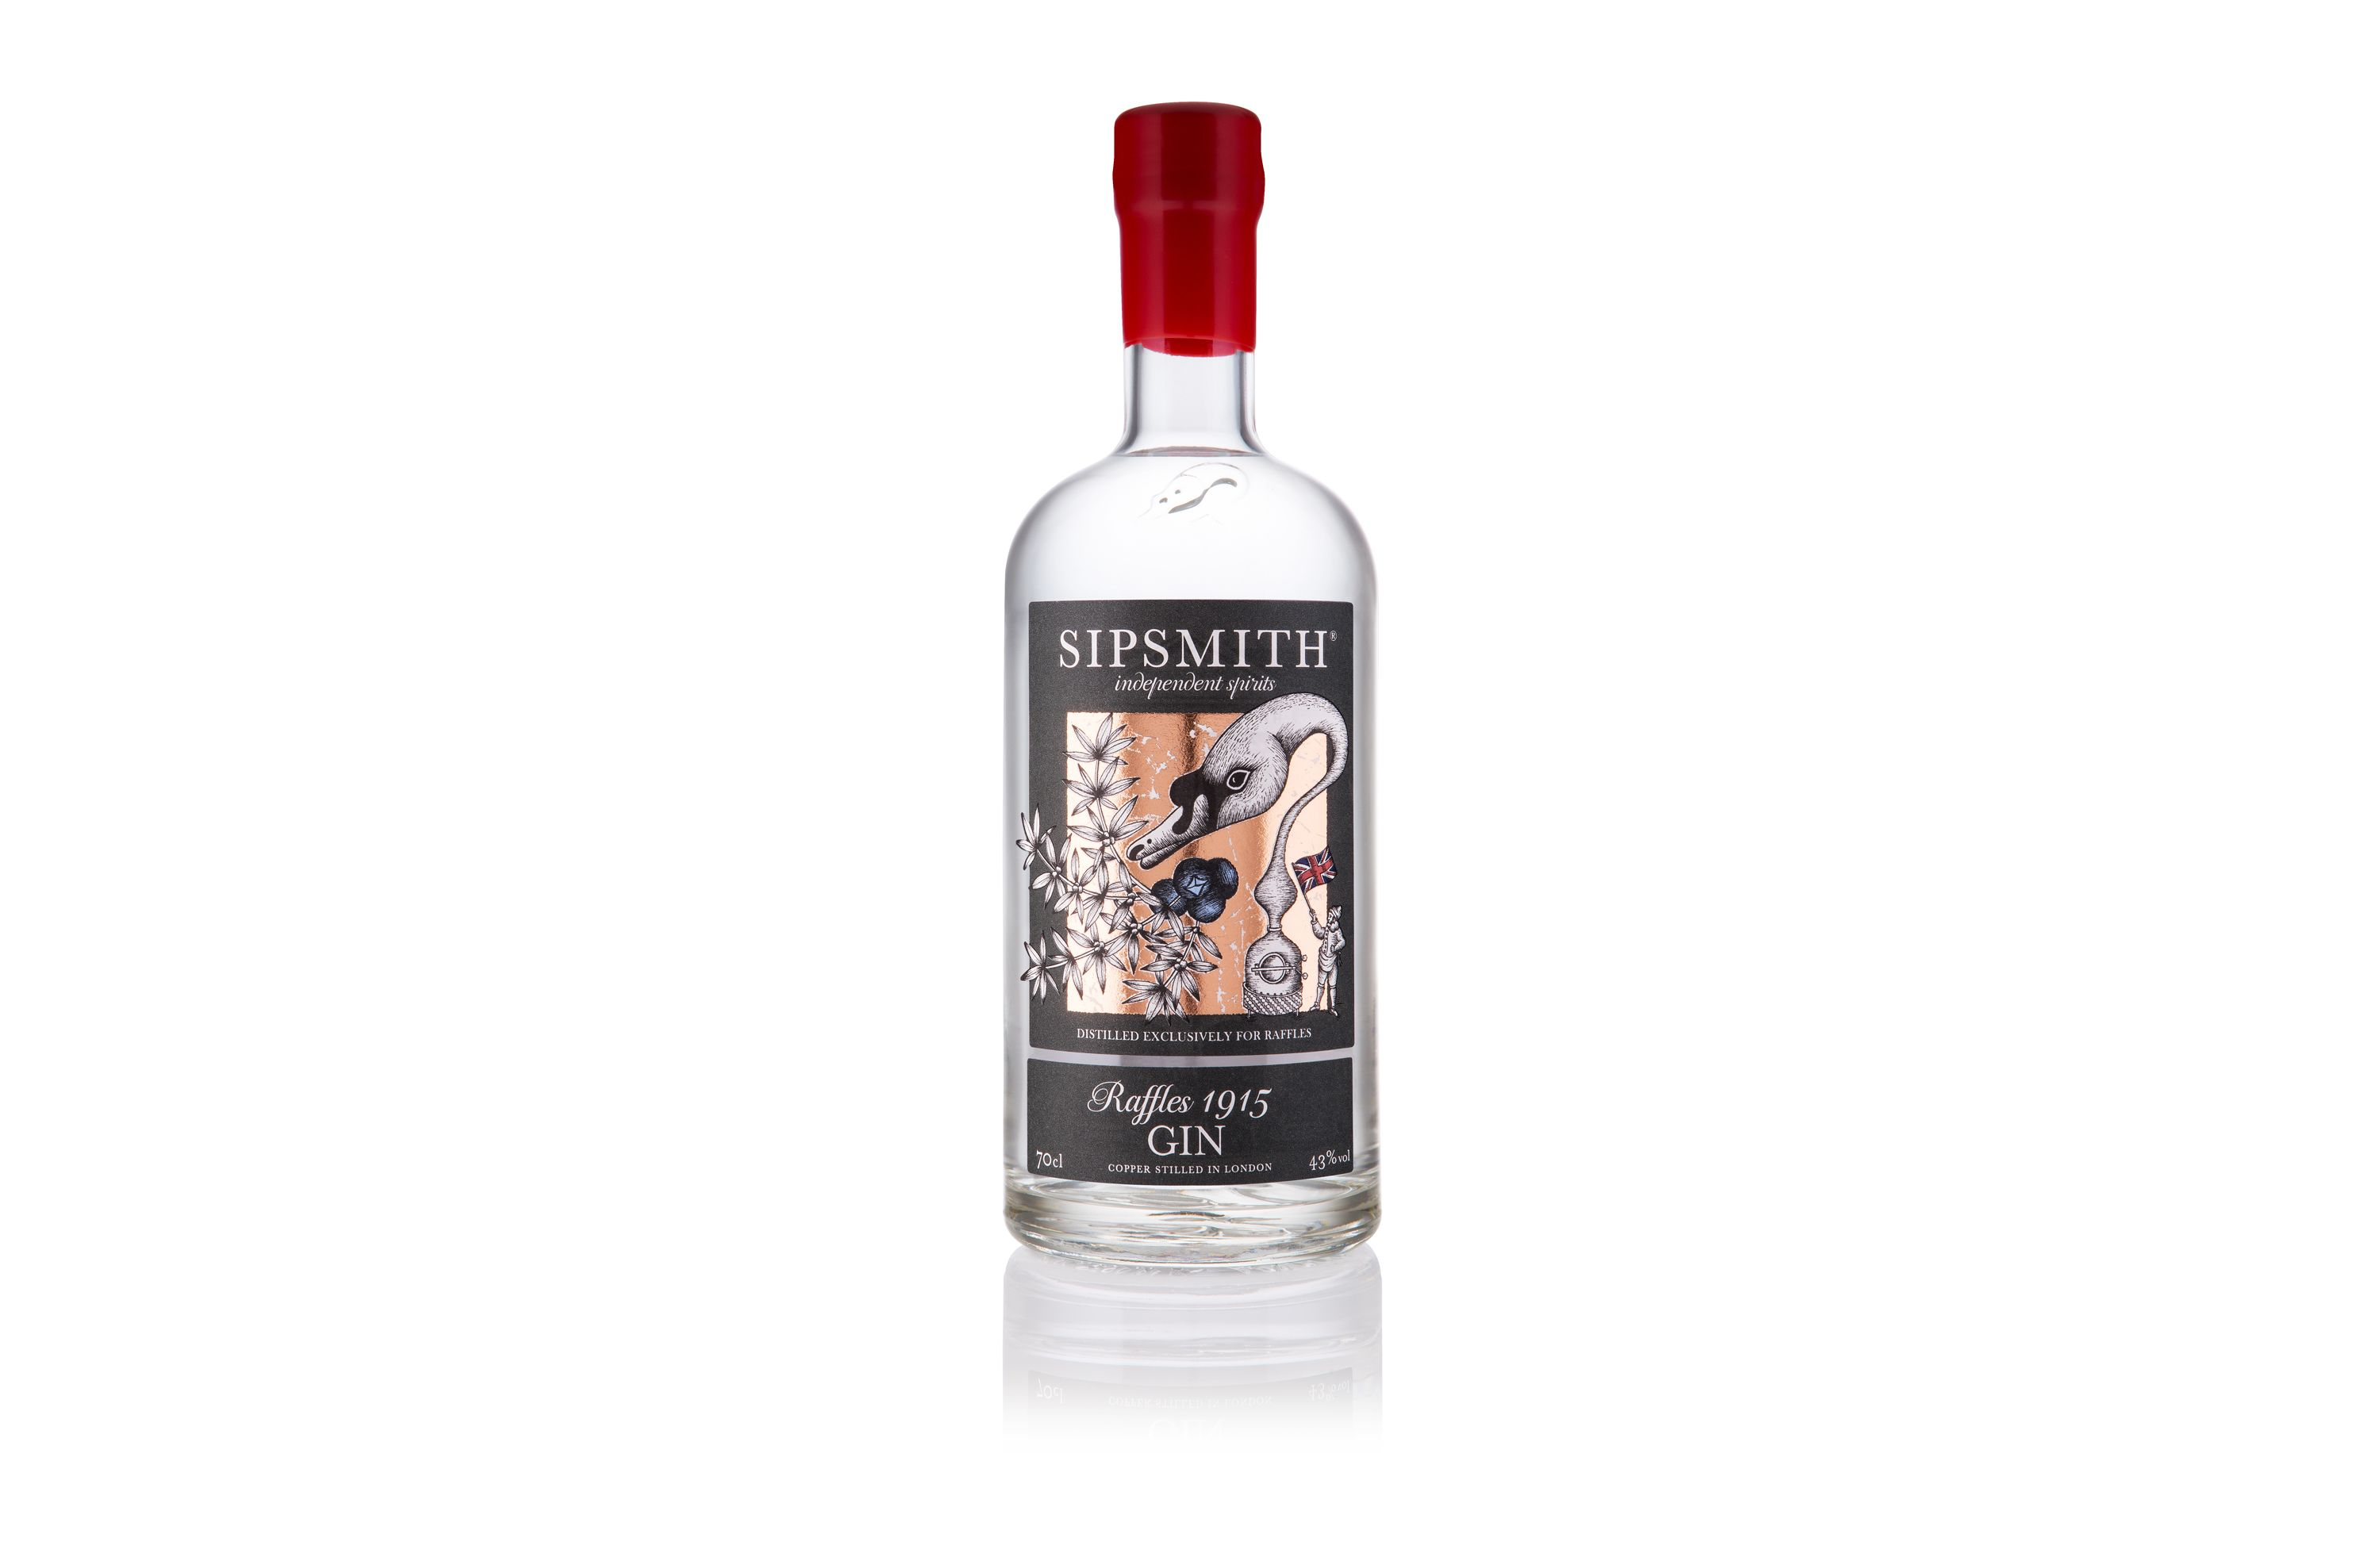 One hundred years ago, in 1915, Ngiam Tong Boon, Head Barman at Raffles' Long Bar, put gin at the heart of one of the most famous cocktails in the world, the Singapore Sling.  To commemorate that milestone, Sipsmith have created Raffles 1915 Gin, which goes on sale exclusively at Selfridge's on Monday 19 October (RRP £44). #gin #selfridges